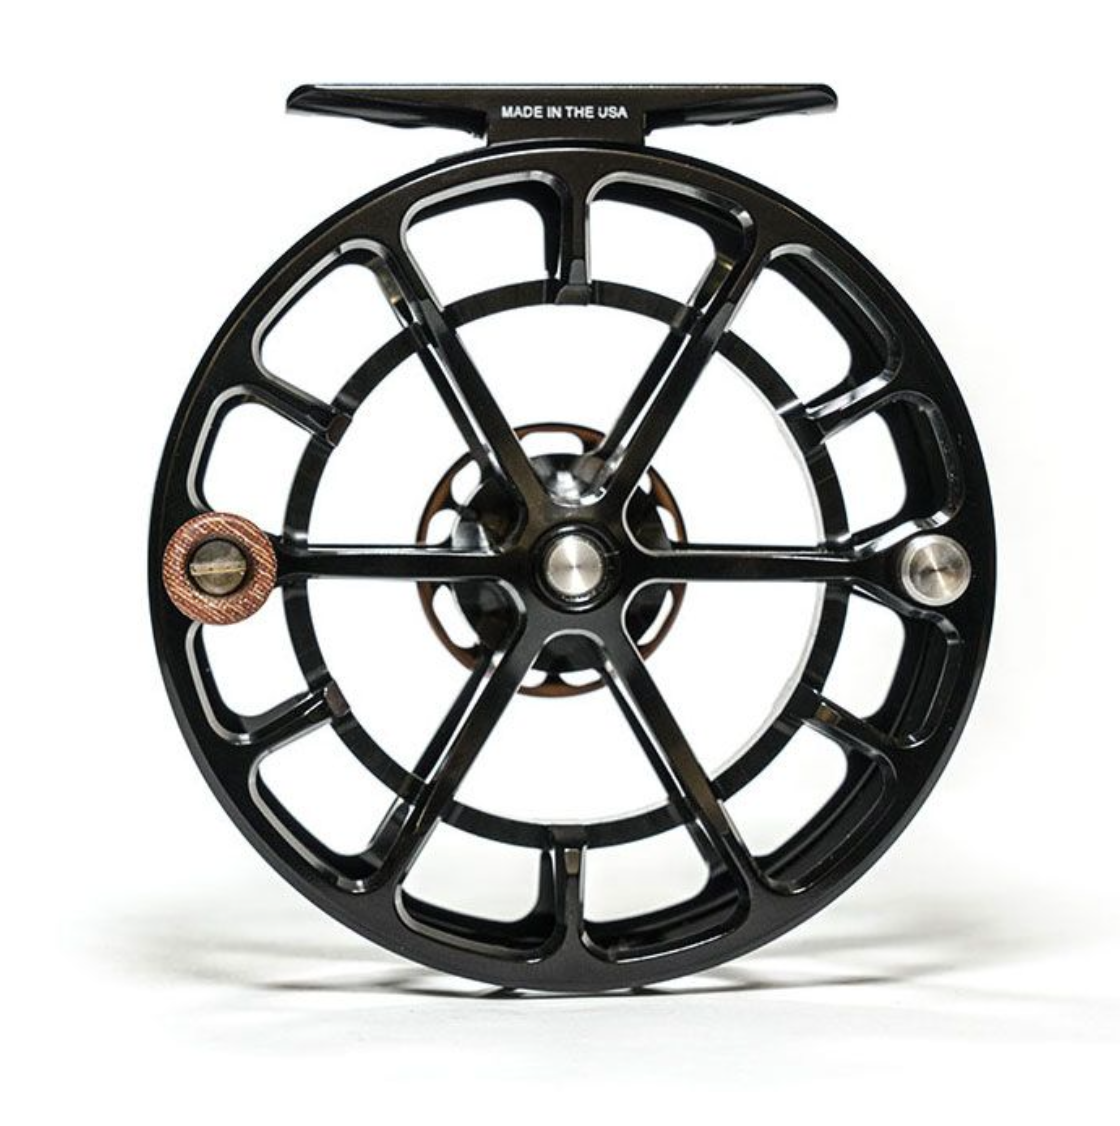 Ross Reels Evolution LTX size 3-4